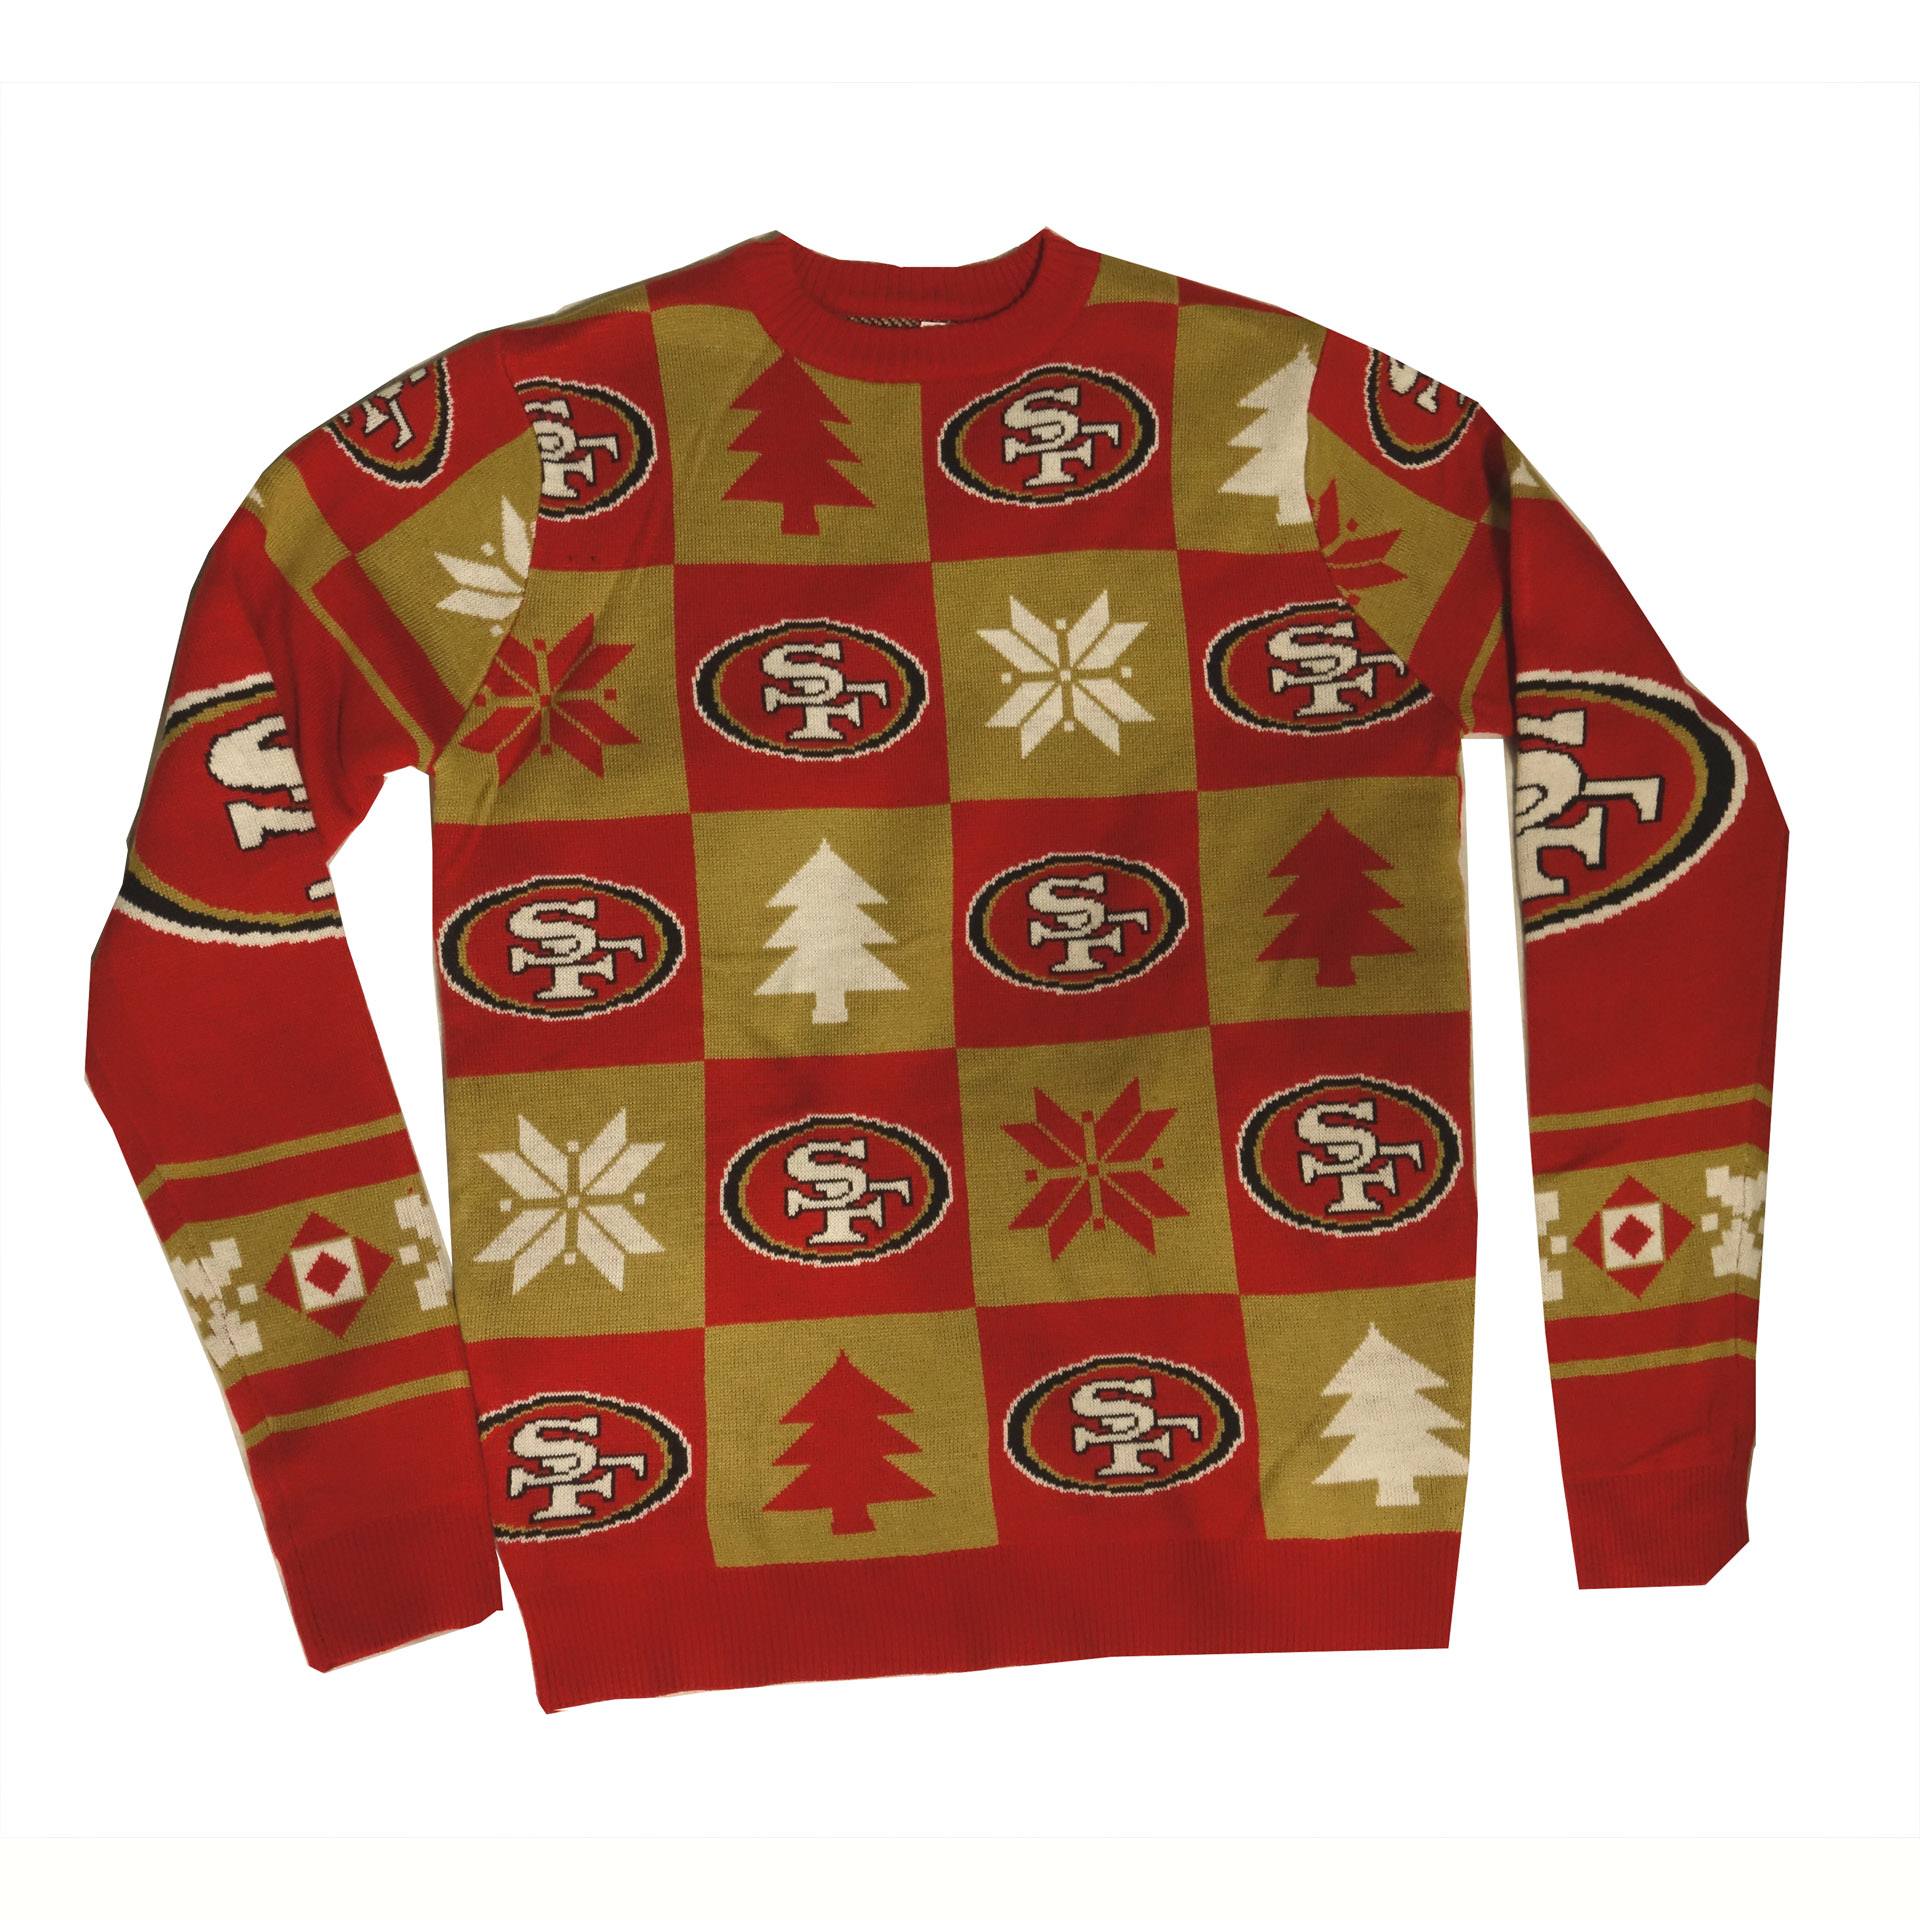 NFL Ugly Sweater San Francisco 49ers Schachbrettmuster Weihnachtspullover